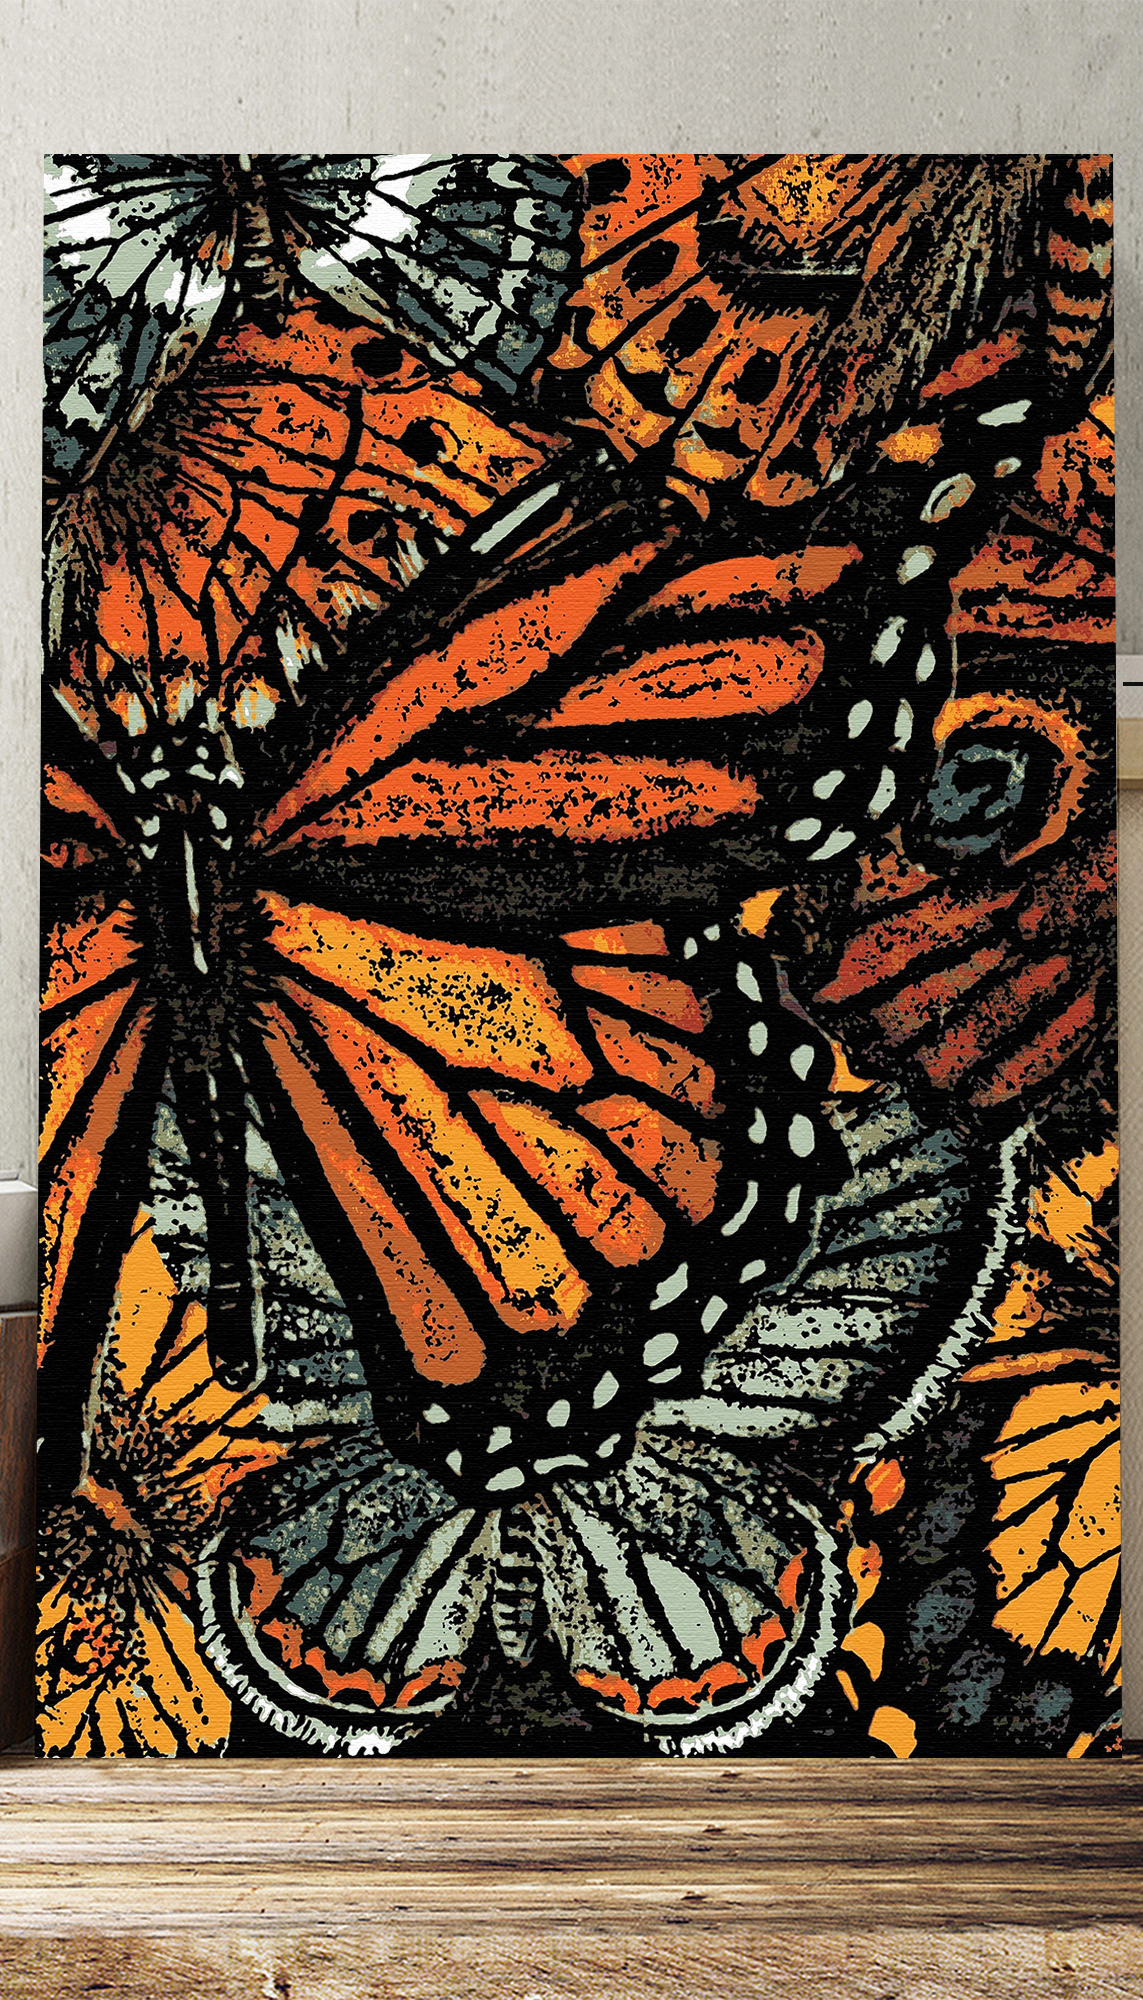 Butterfly Photographic Print On Canvas Butterfly Artwork Canvas Prints Big Box Art